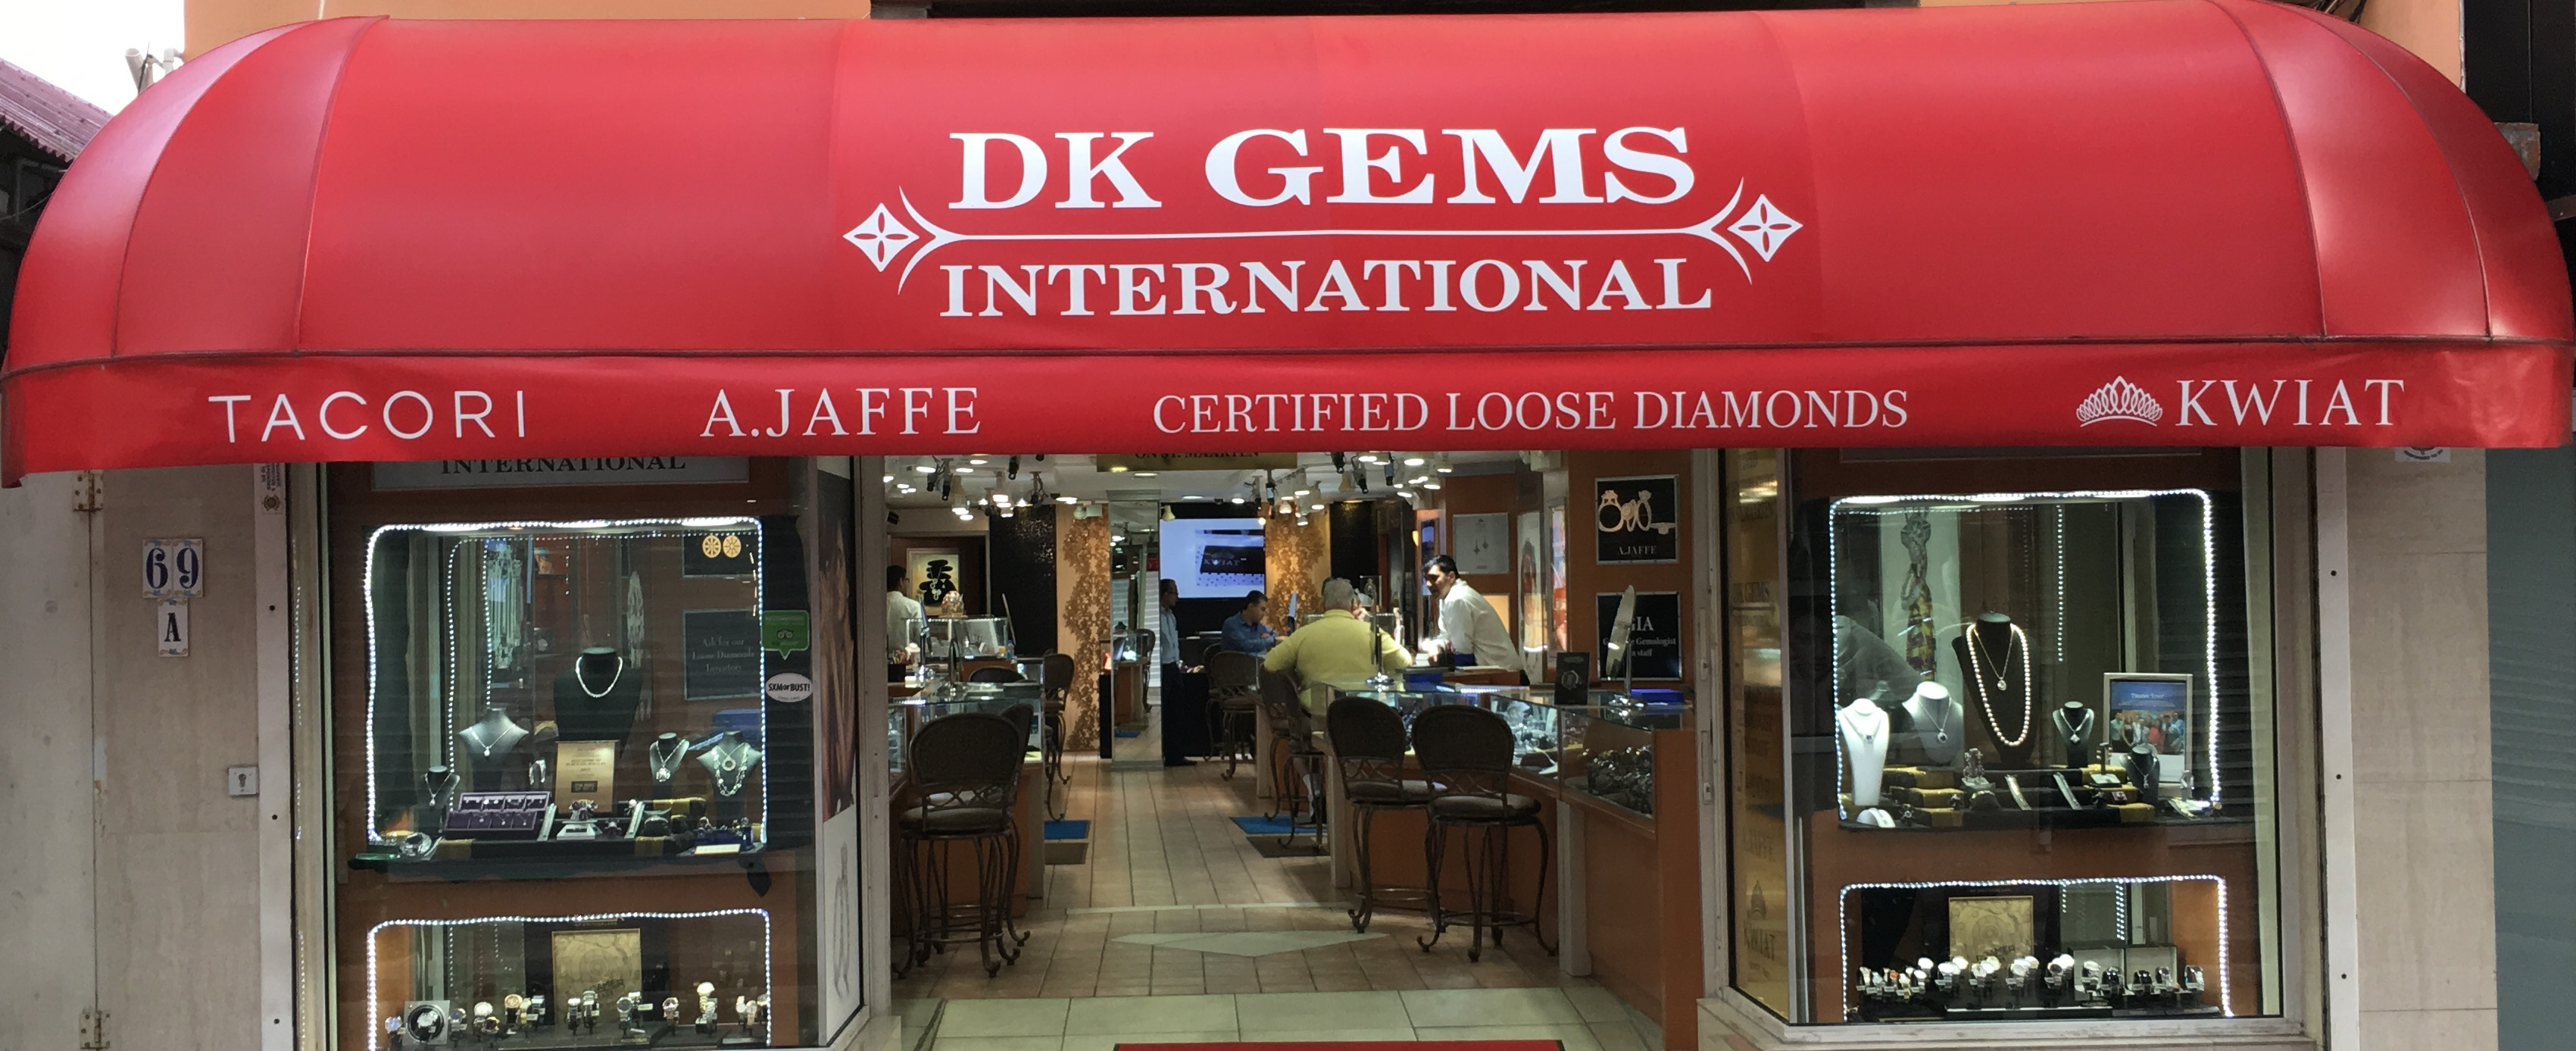 DK Gems VOTED #1 BEST St Maarten Jewelry stores 2016 by the DAILY HERALD SXM